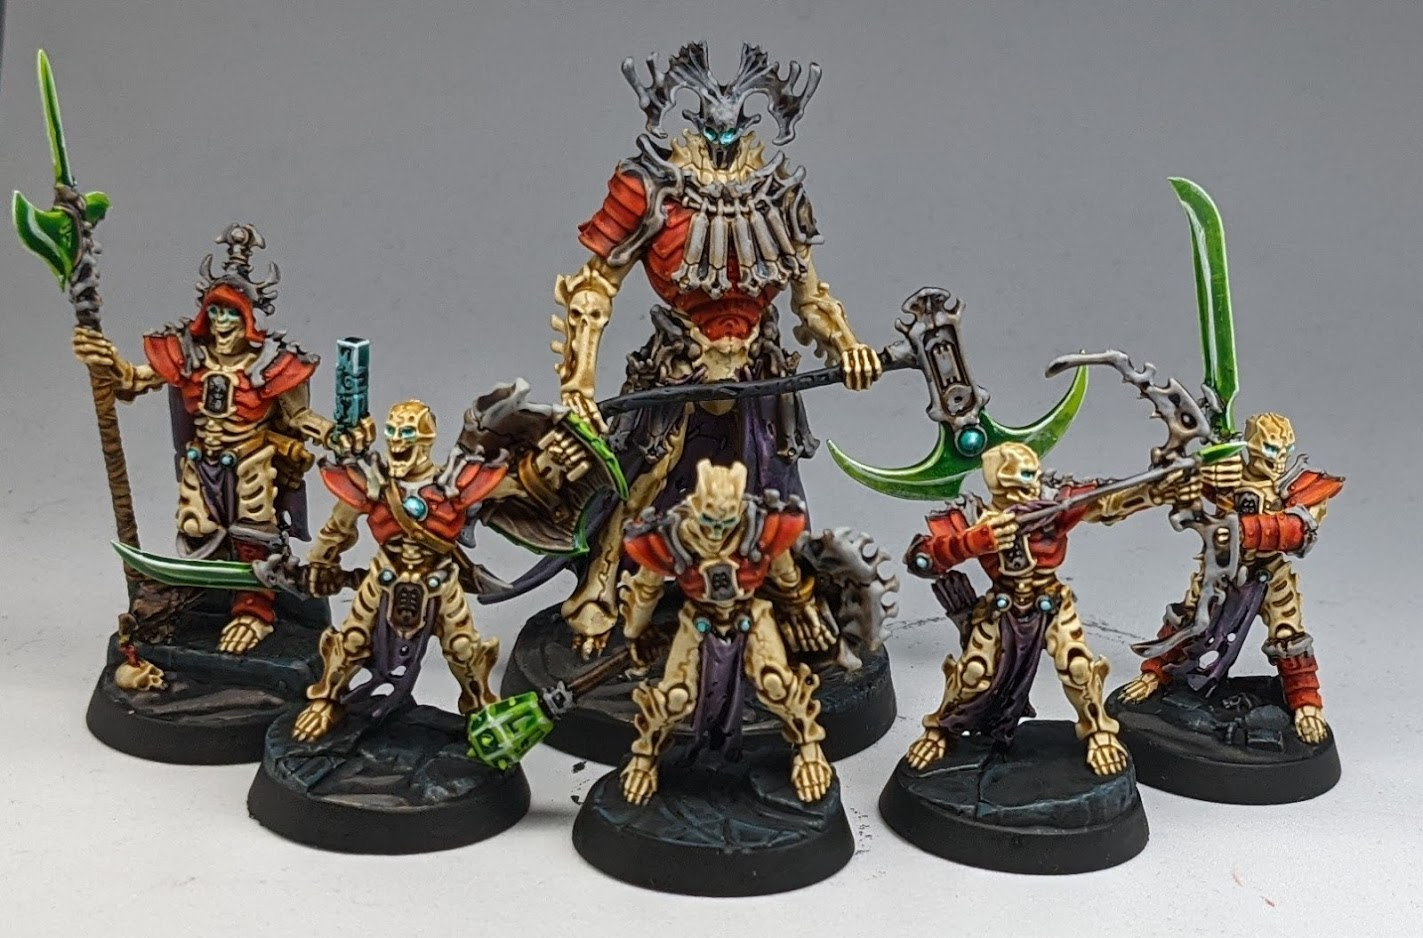 A unit of six Ossiarch Bonereapers, skeletal warriors wearing red armour.